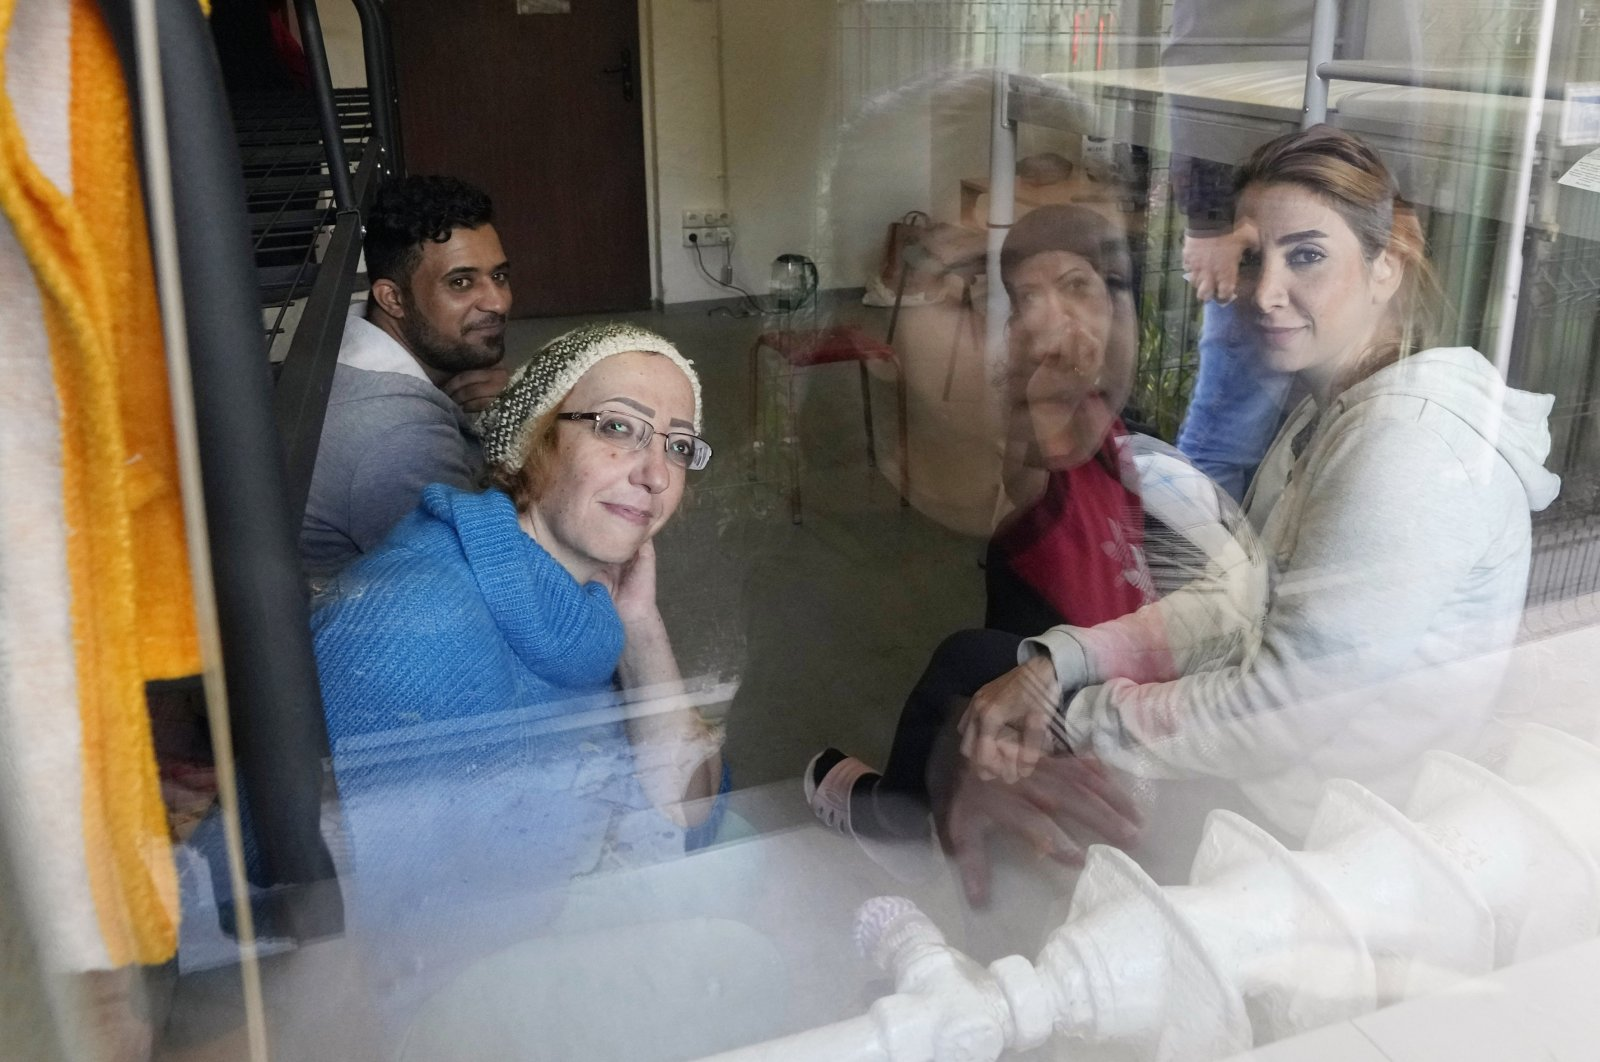 Boshra al-Moallem (foreground L), looks out of the window as she sits in a room with her two sisters and brother-in-law at a refugee center in Bialystok, Poland, Sept. 29, 2021. (AP Photo)